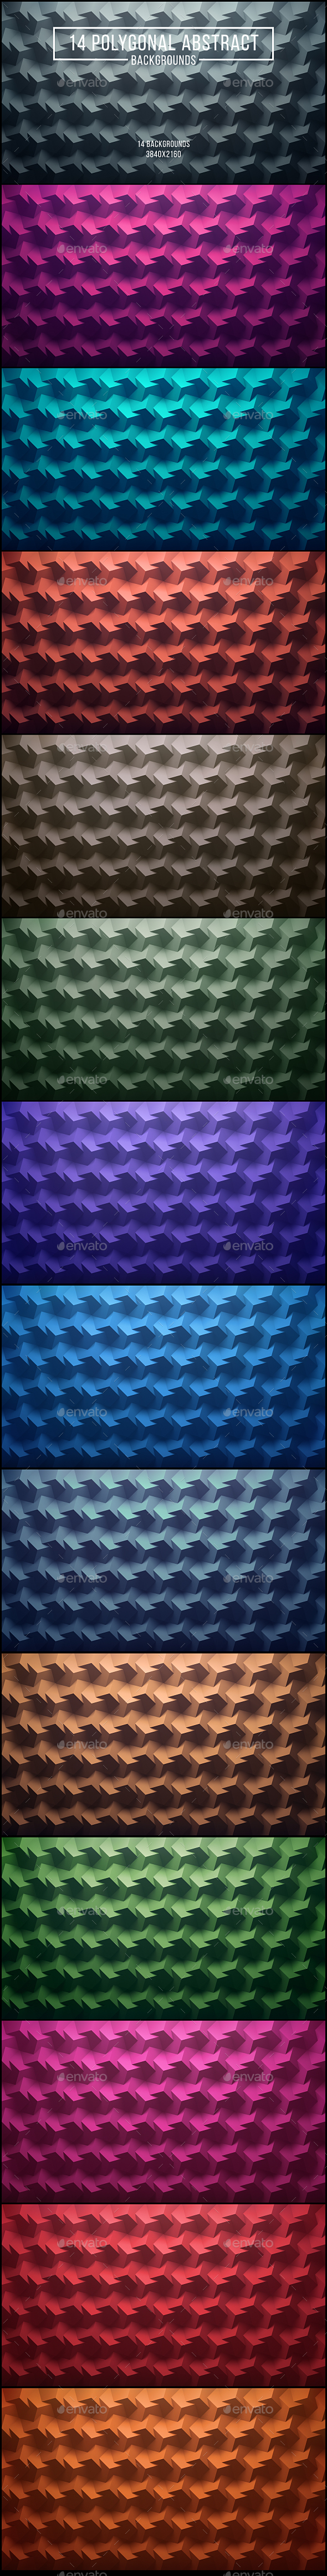 14 Polygonal Abstract Backgrounds 2